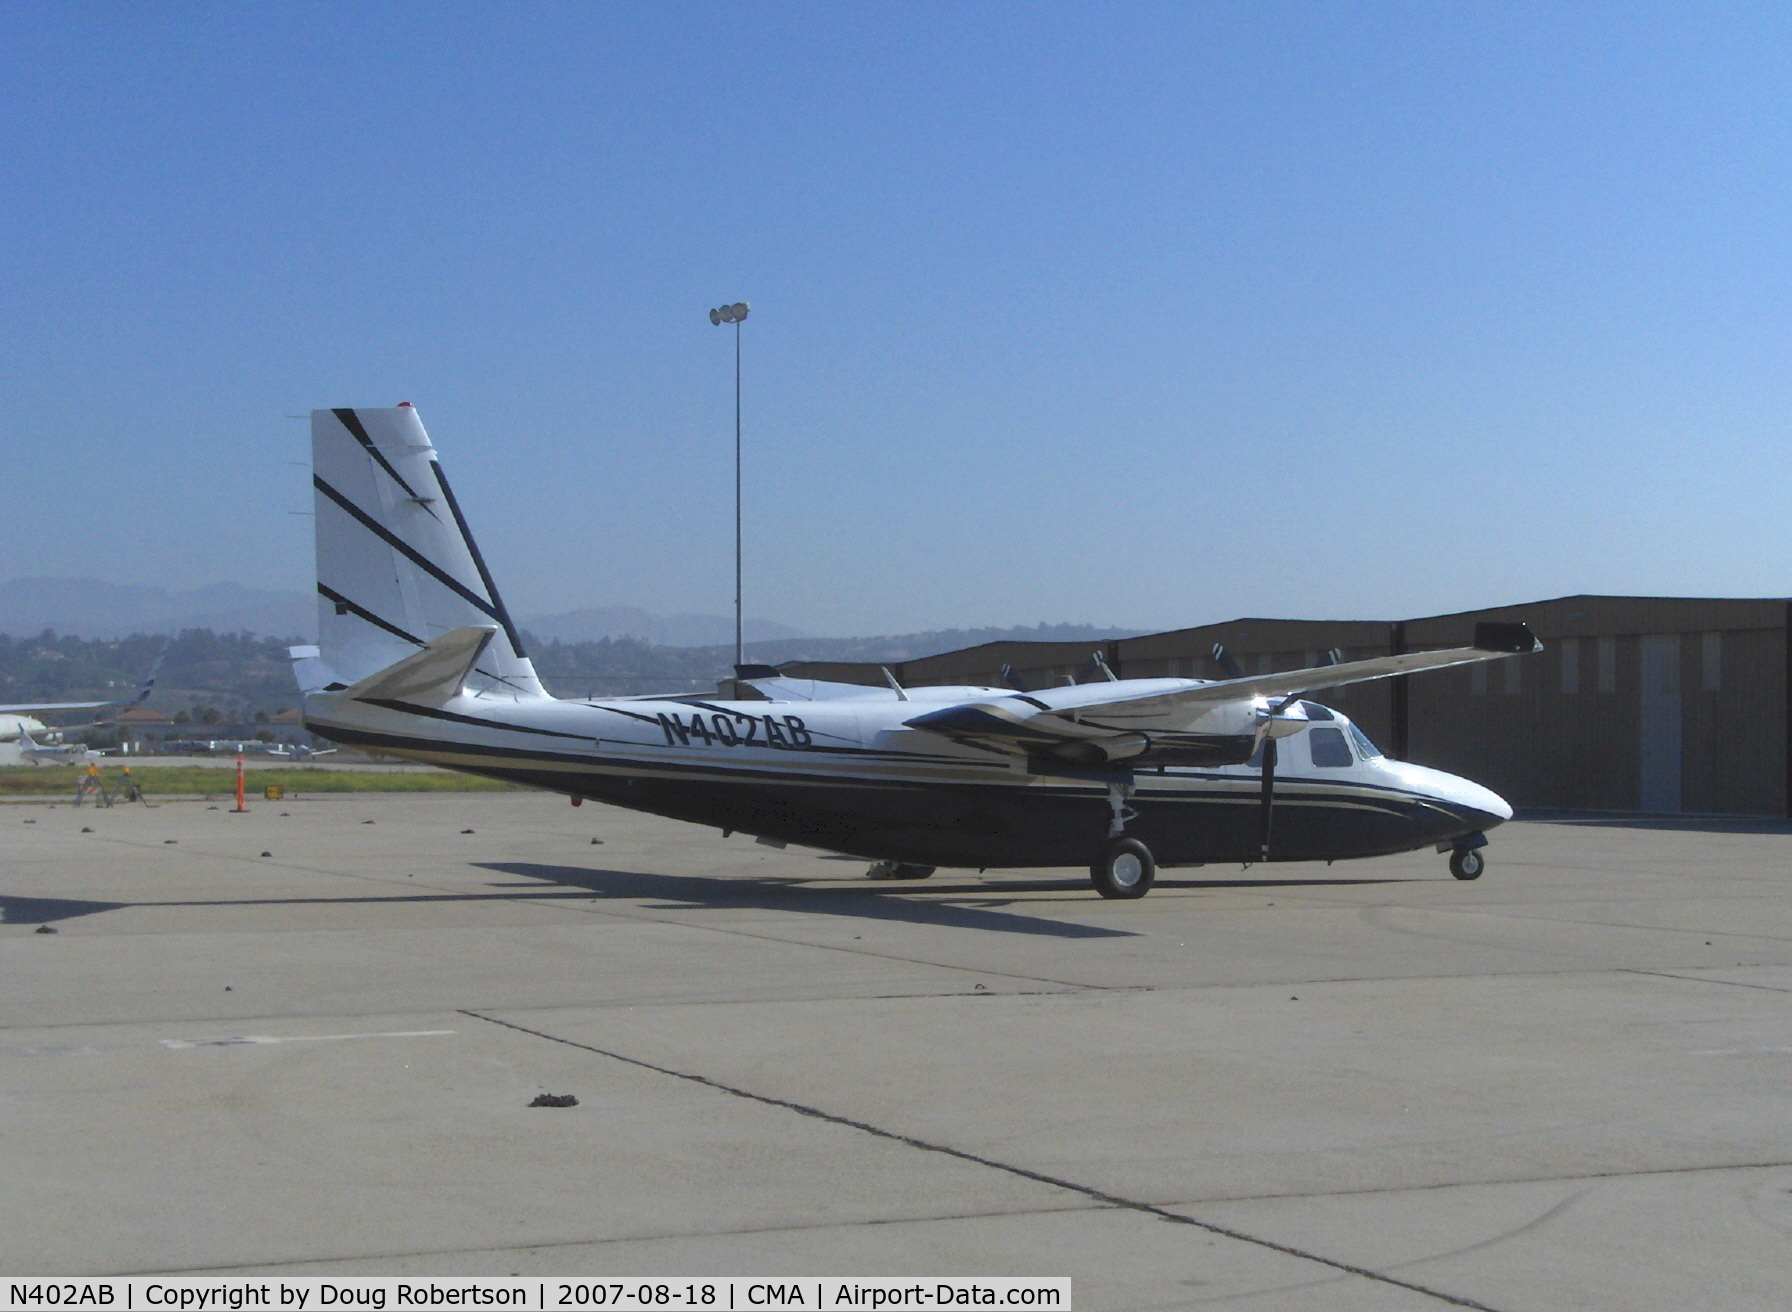 N402AB, Rockwell International 690C C/N 11659, 1985 Rockwell TURBO COMMANDER 690C, two Airesearch TPE331--5&6 700 shp turboprops